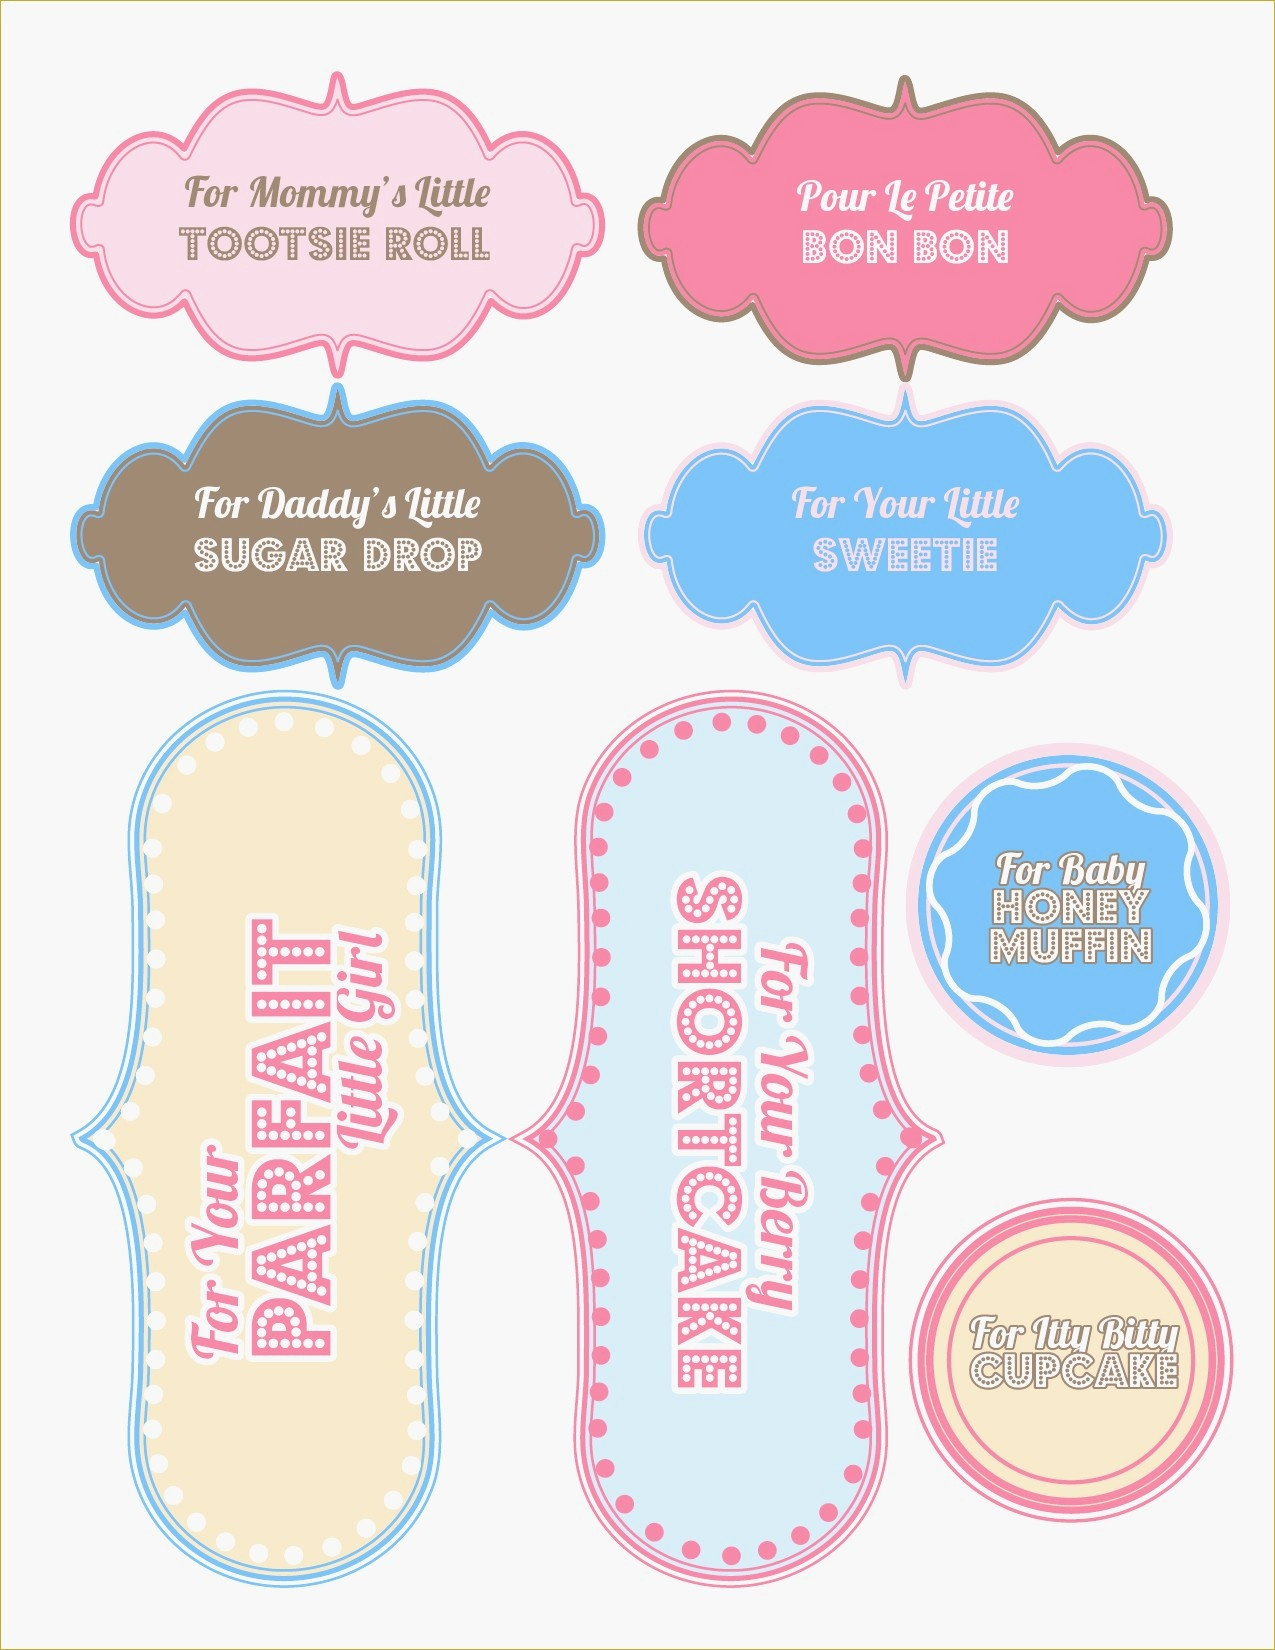 Free Printable Baby Shower Favor Tags Template Brochure Templates - Free Printable Baby Shower Favor Tags